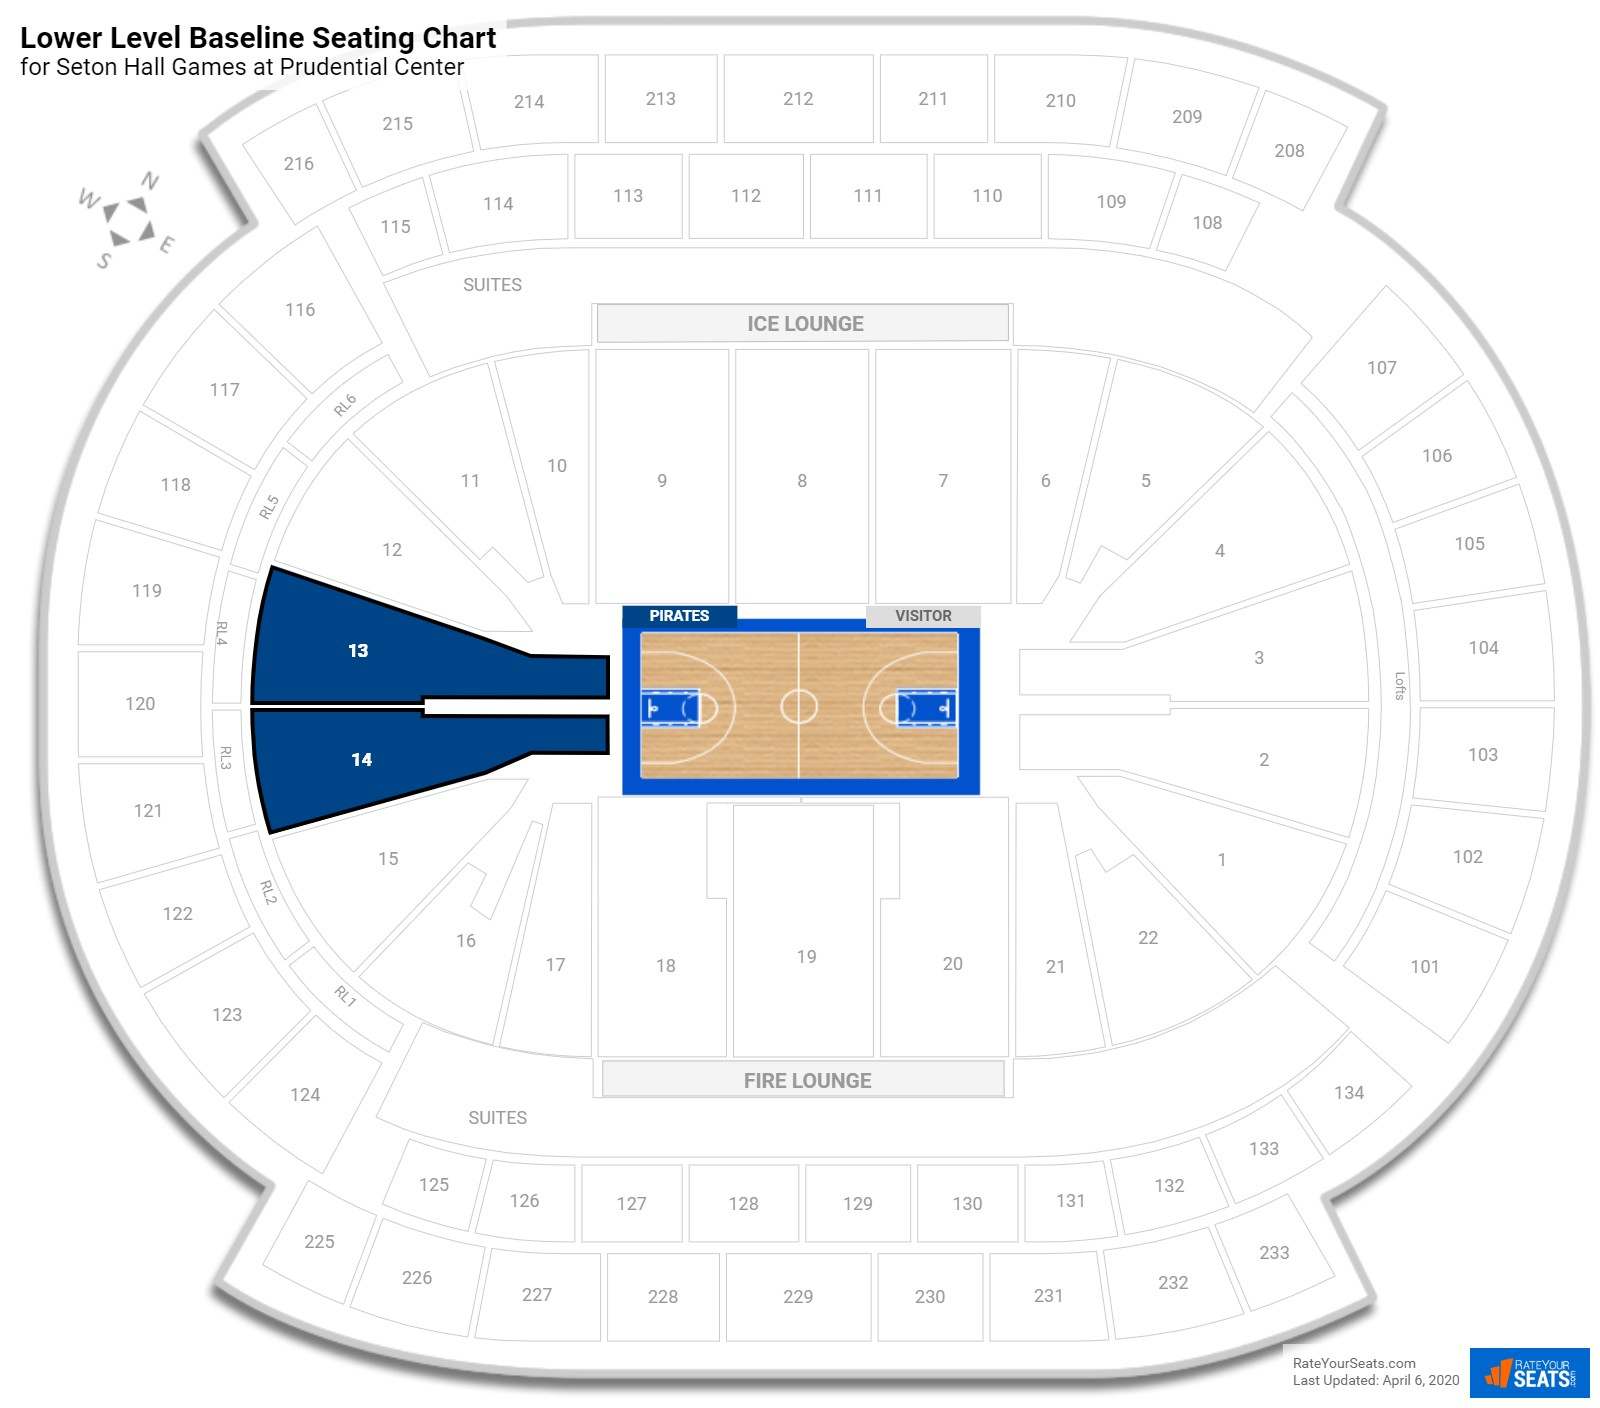 Prudential Center Lower Level Baseline Seating Chart